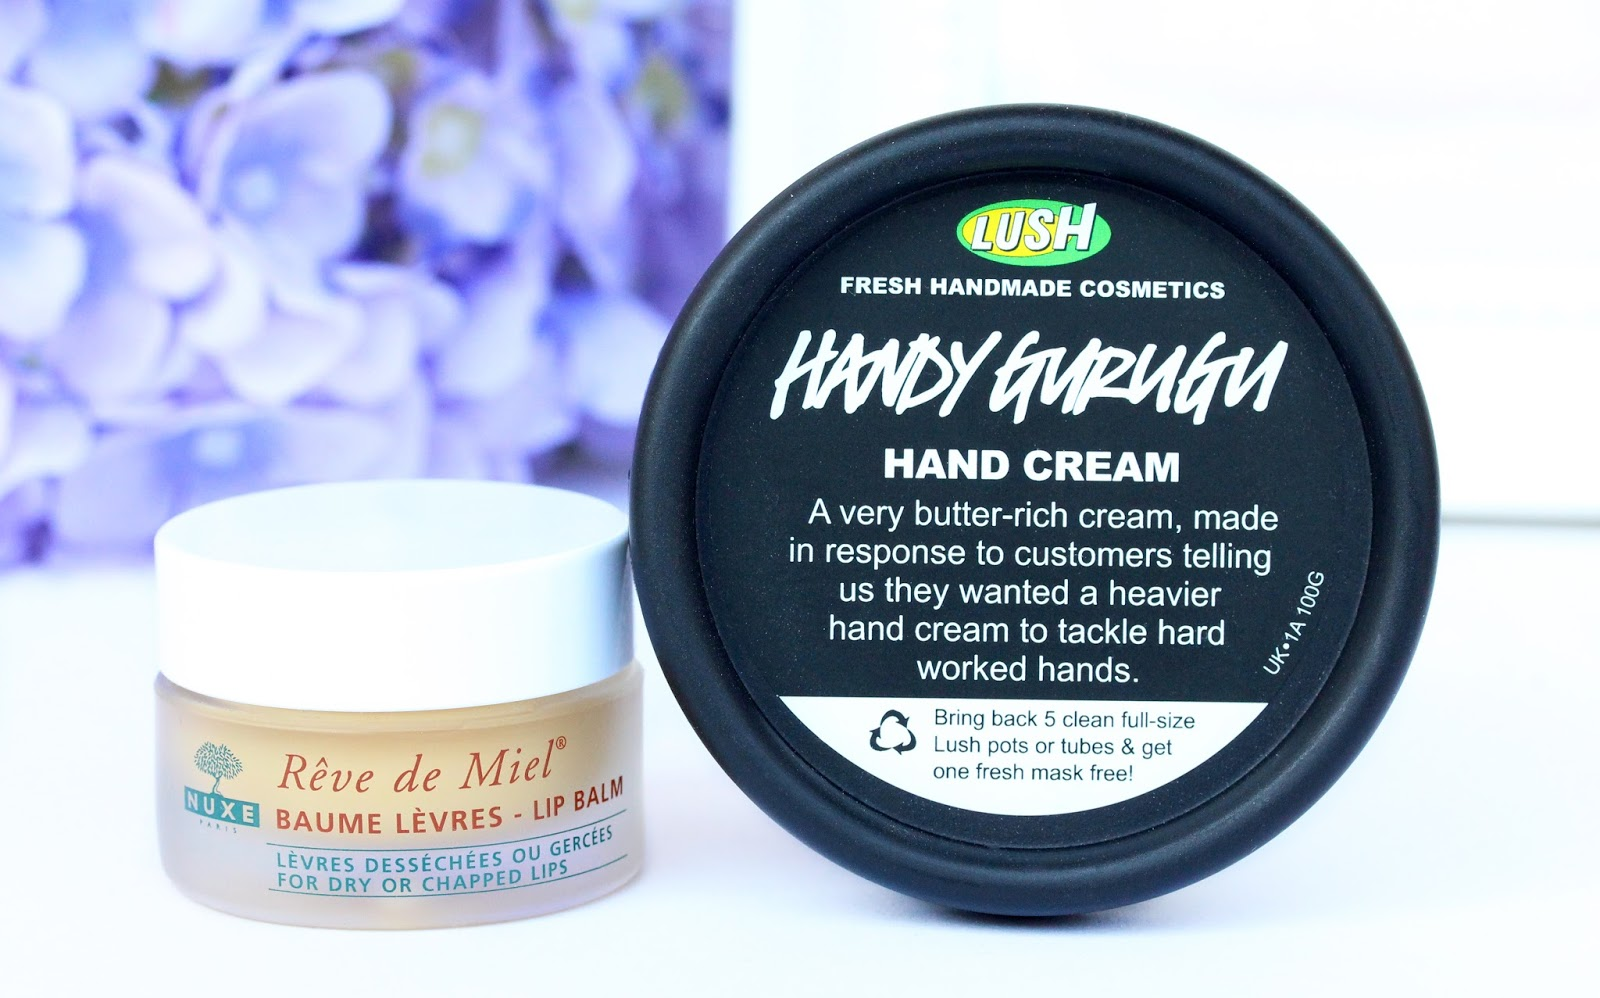 lush handy gurugu and nuxe reve de miel lip balm